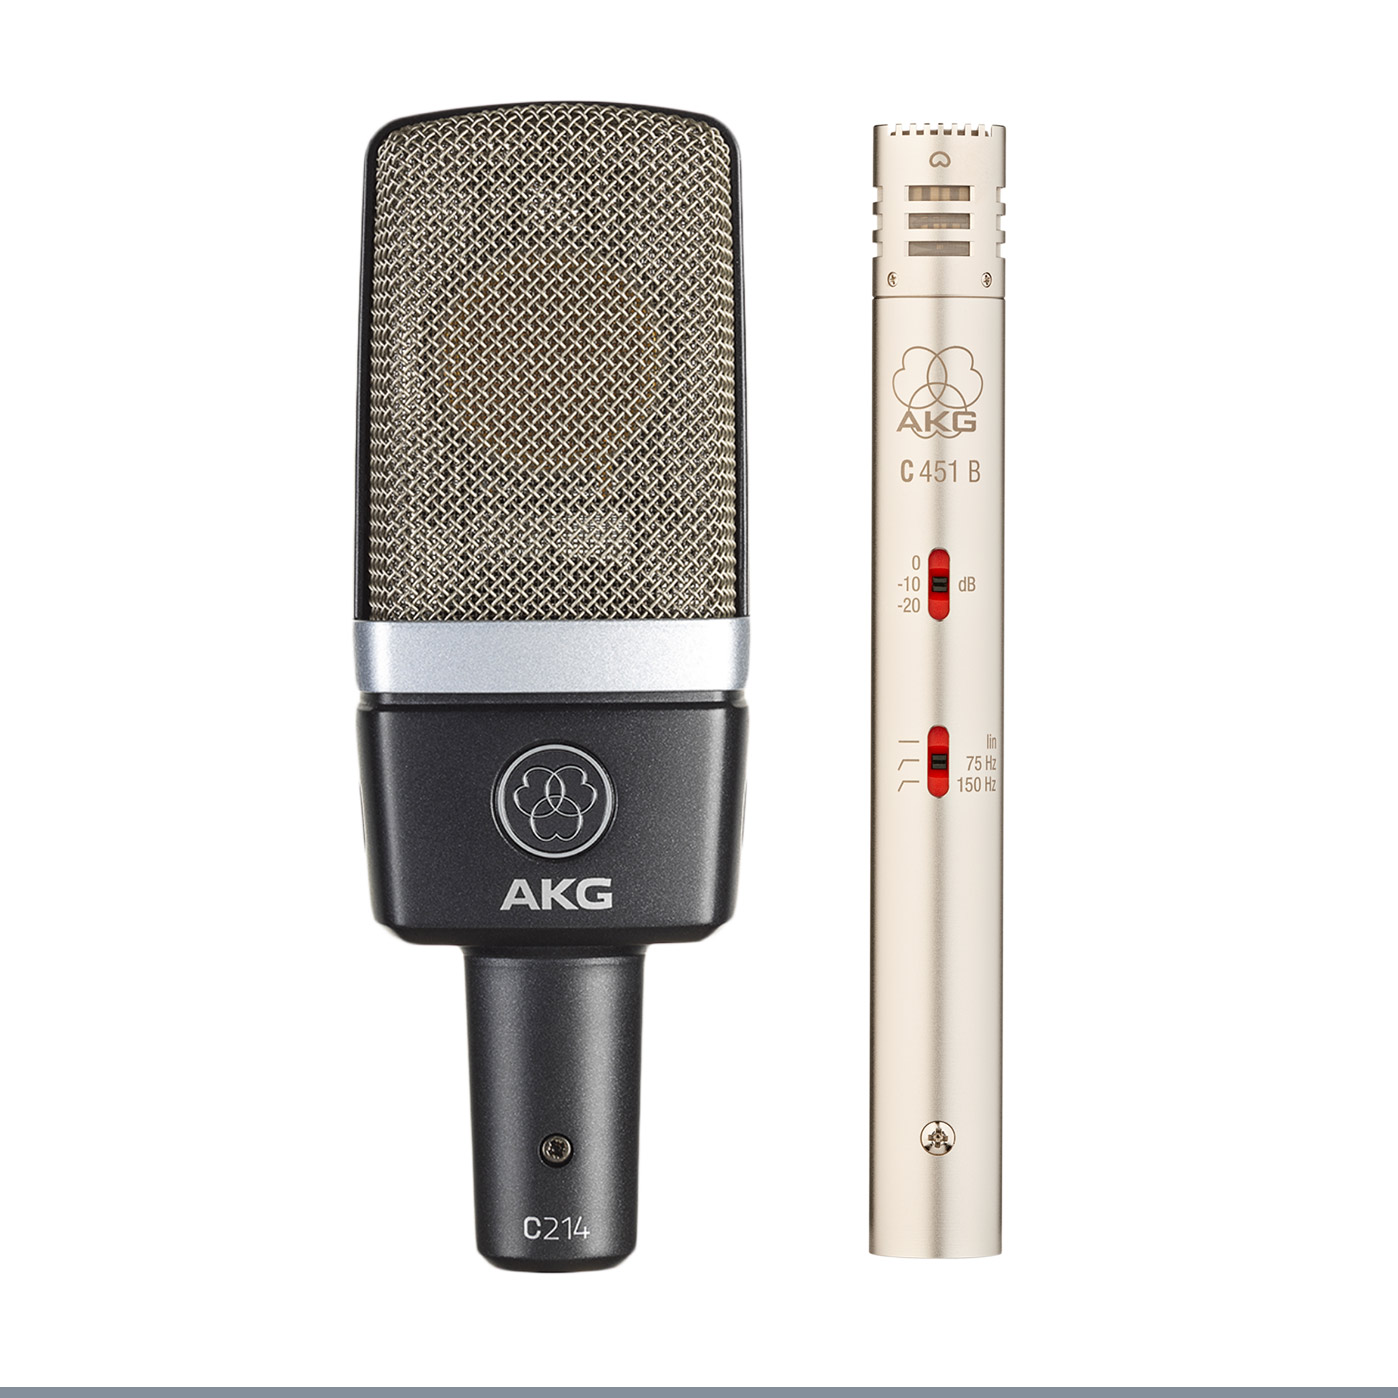 MICS YOU CRAVE AT PRICES YOU'LL LOVE